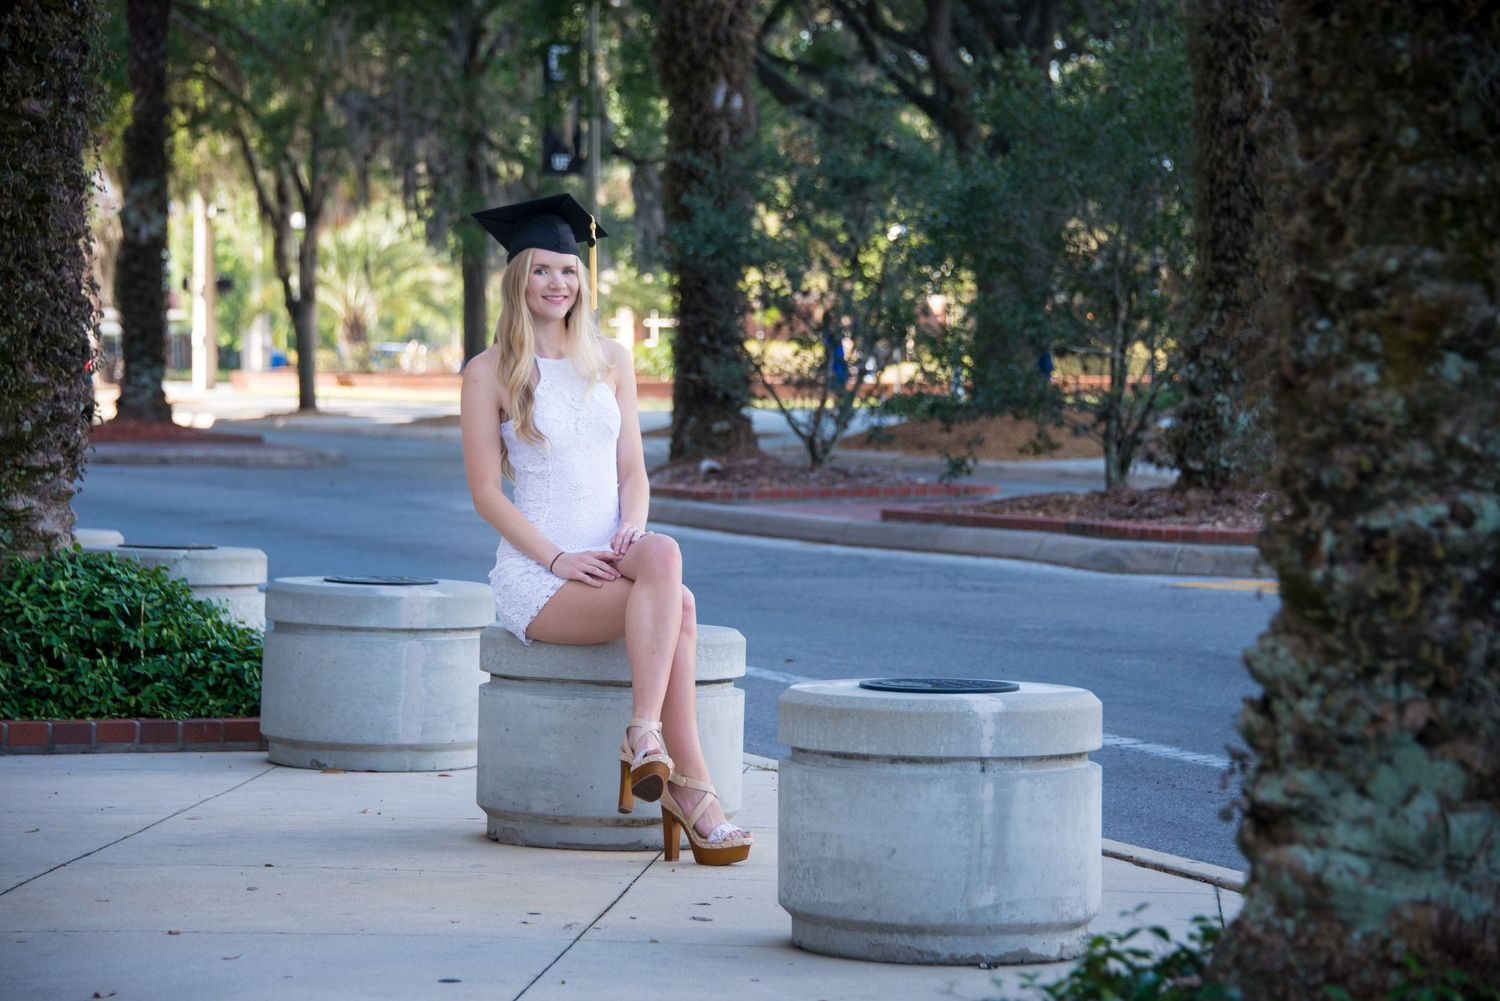 A beautiful blonde woman dressed in a white dress celebrates her graduation from the University of Florida.